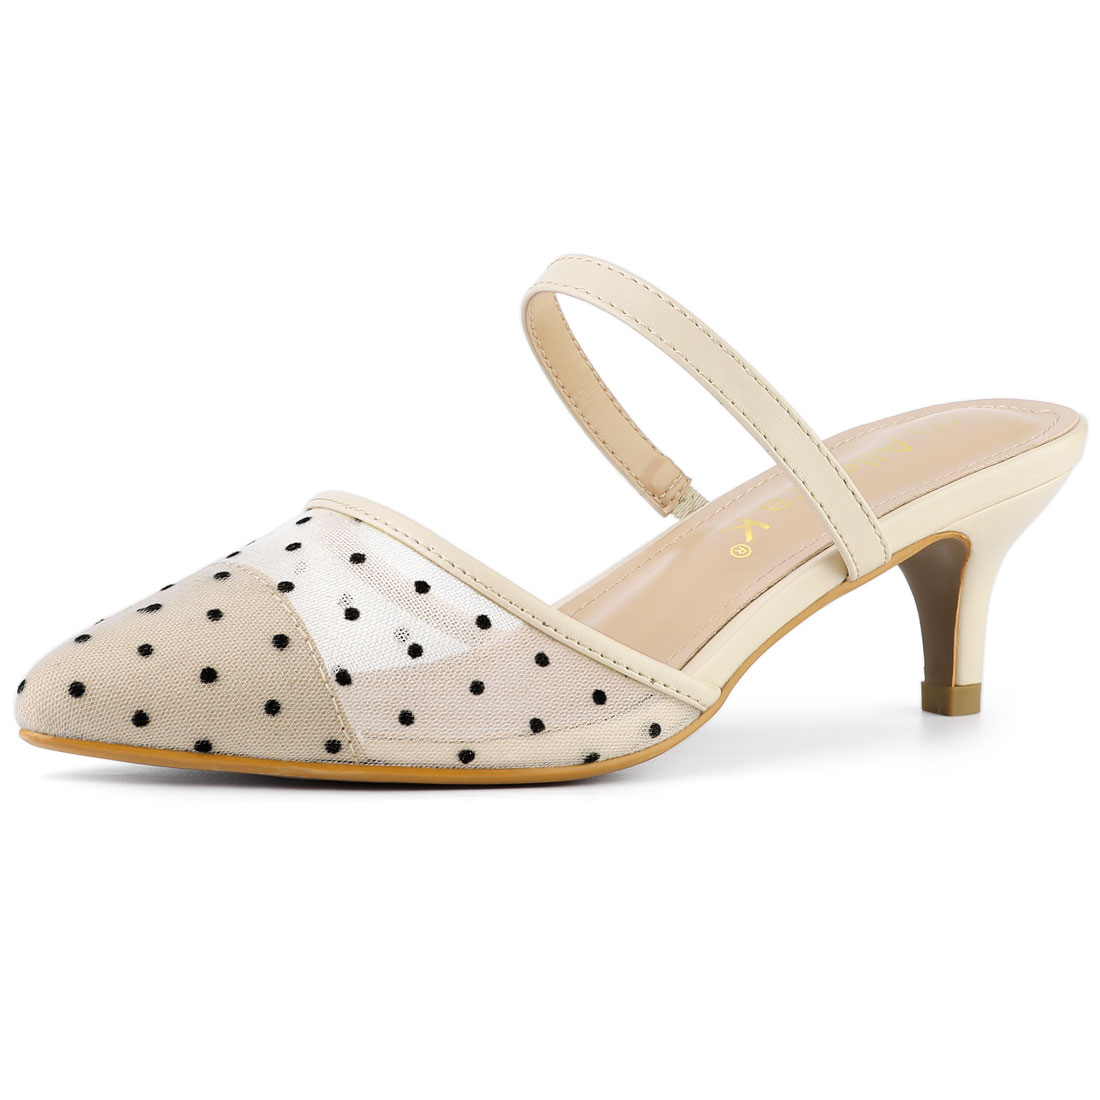 Allegra K Women's Point Toe Polka Dot Kitten Heel Mesh Mules Beige US 8.5